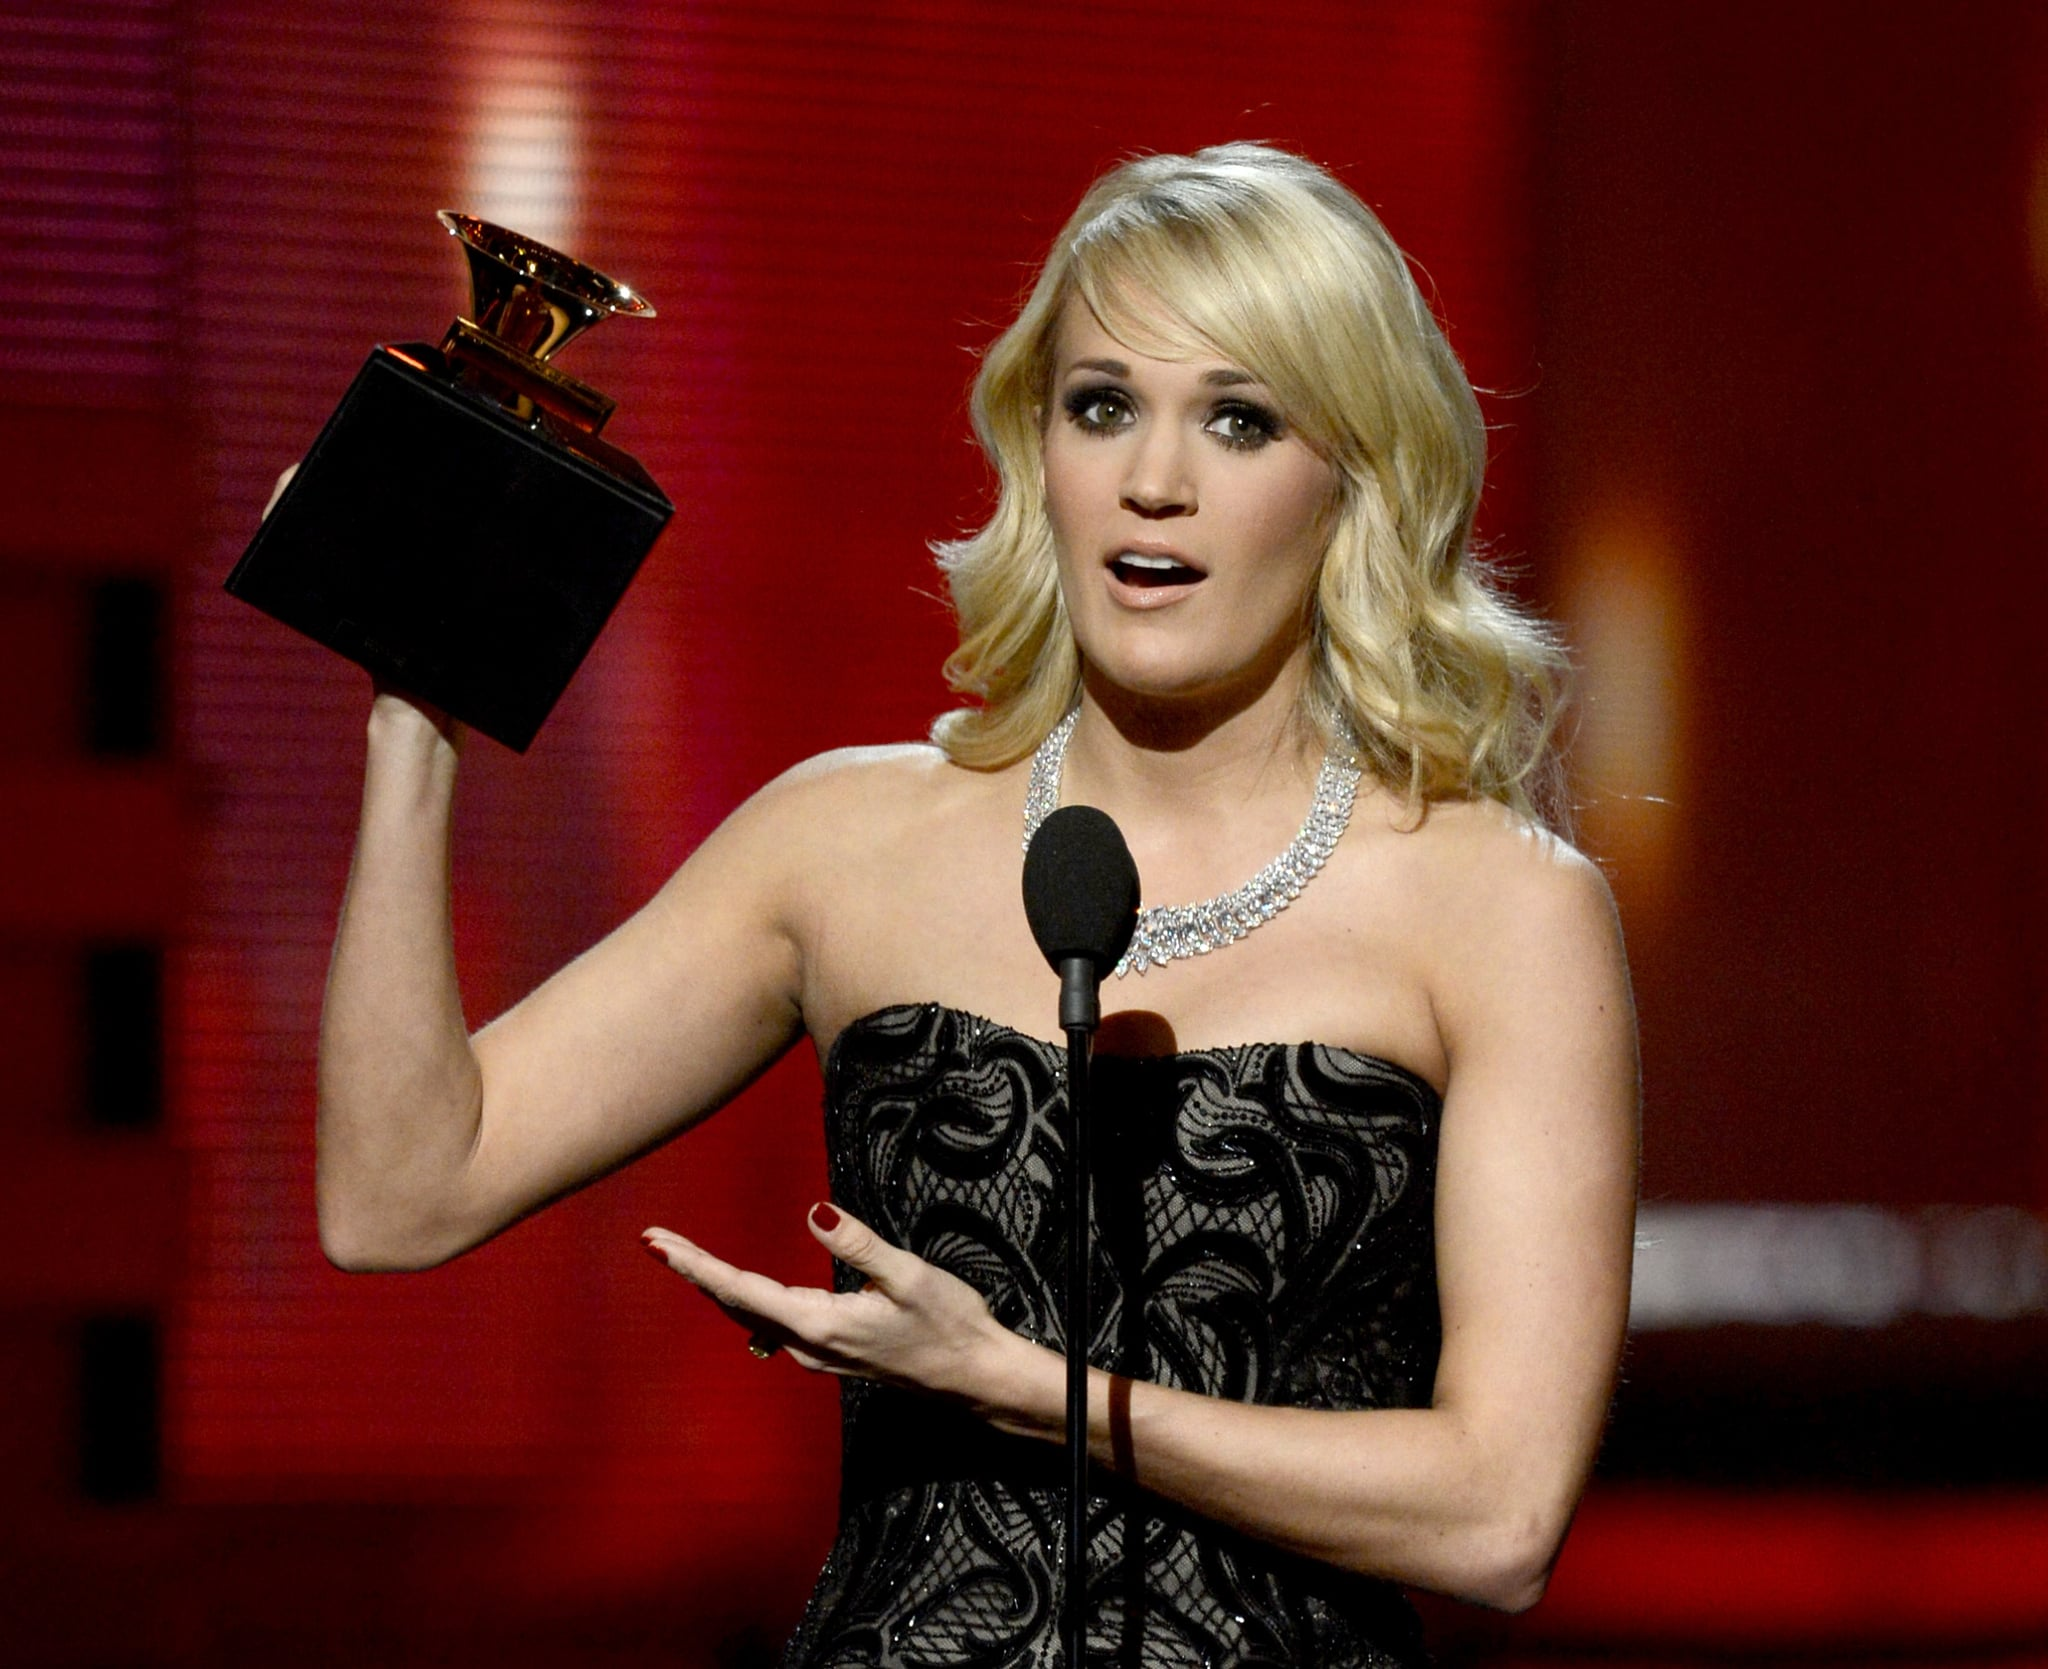 Carrie Underwood held up her Grammy award.